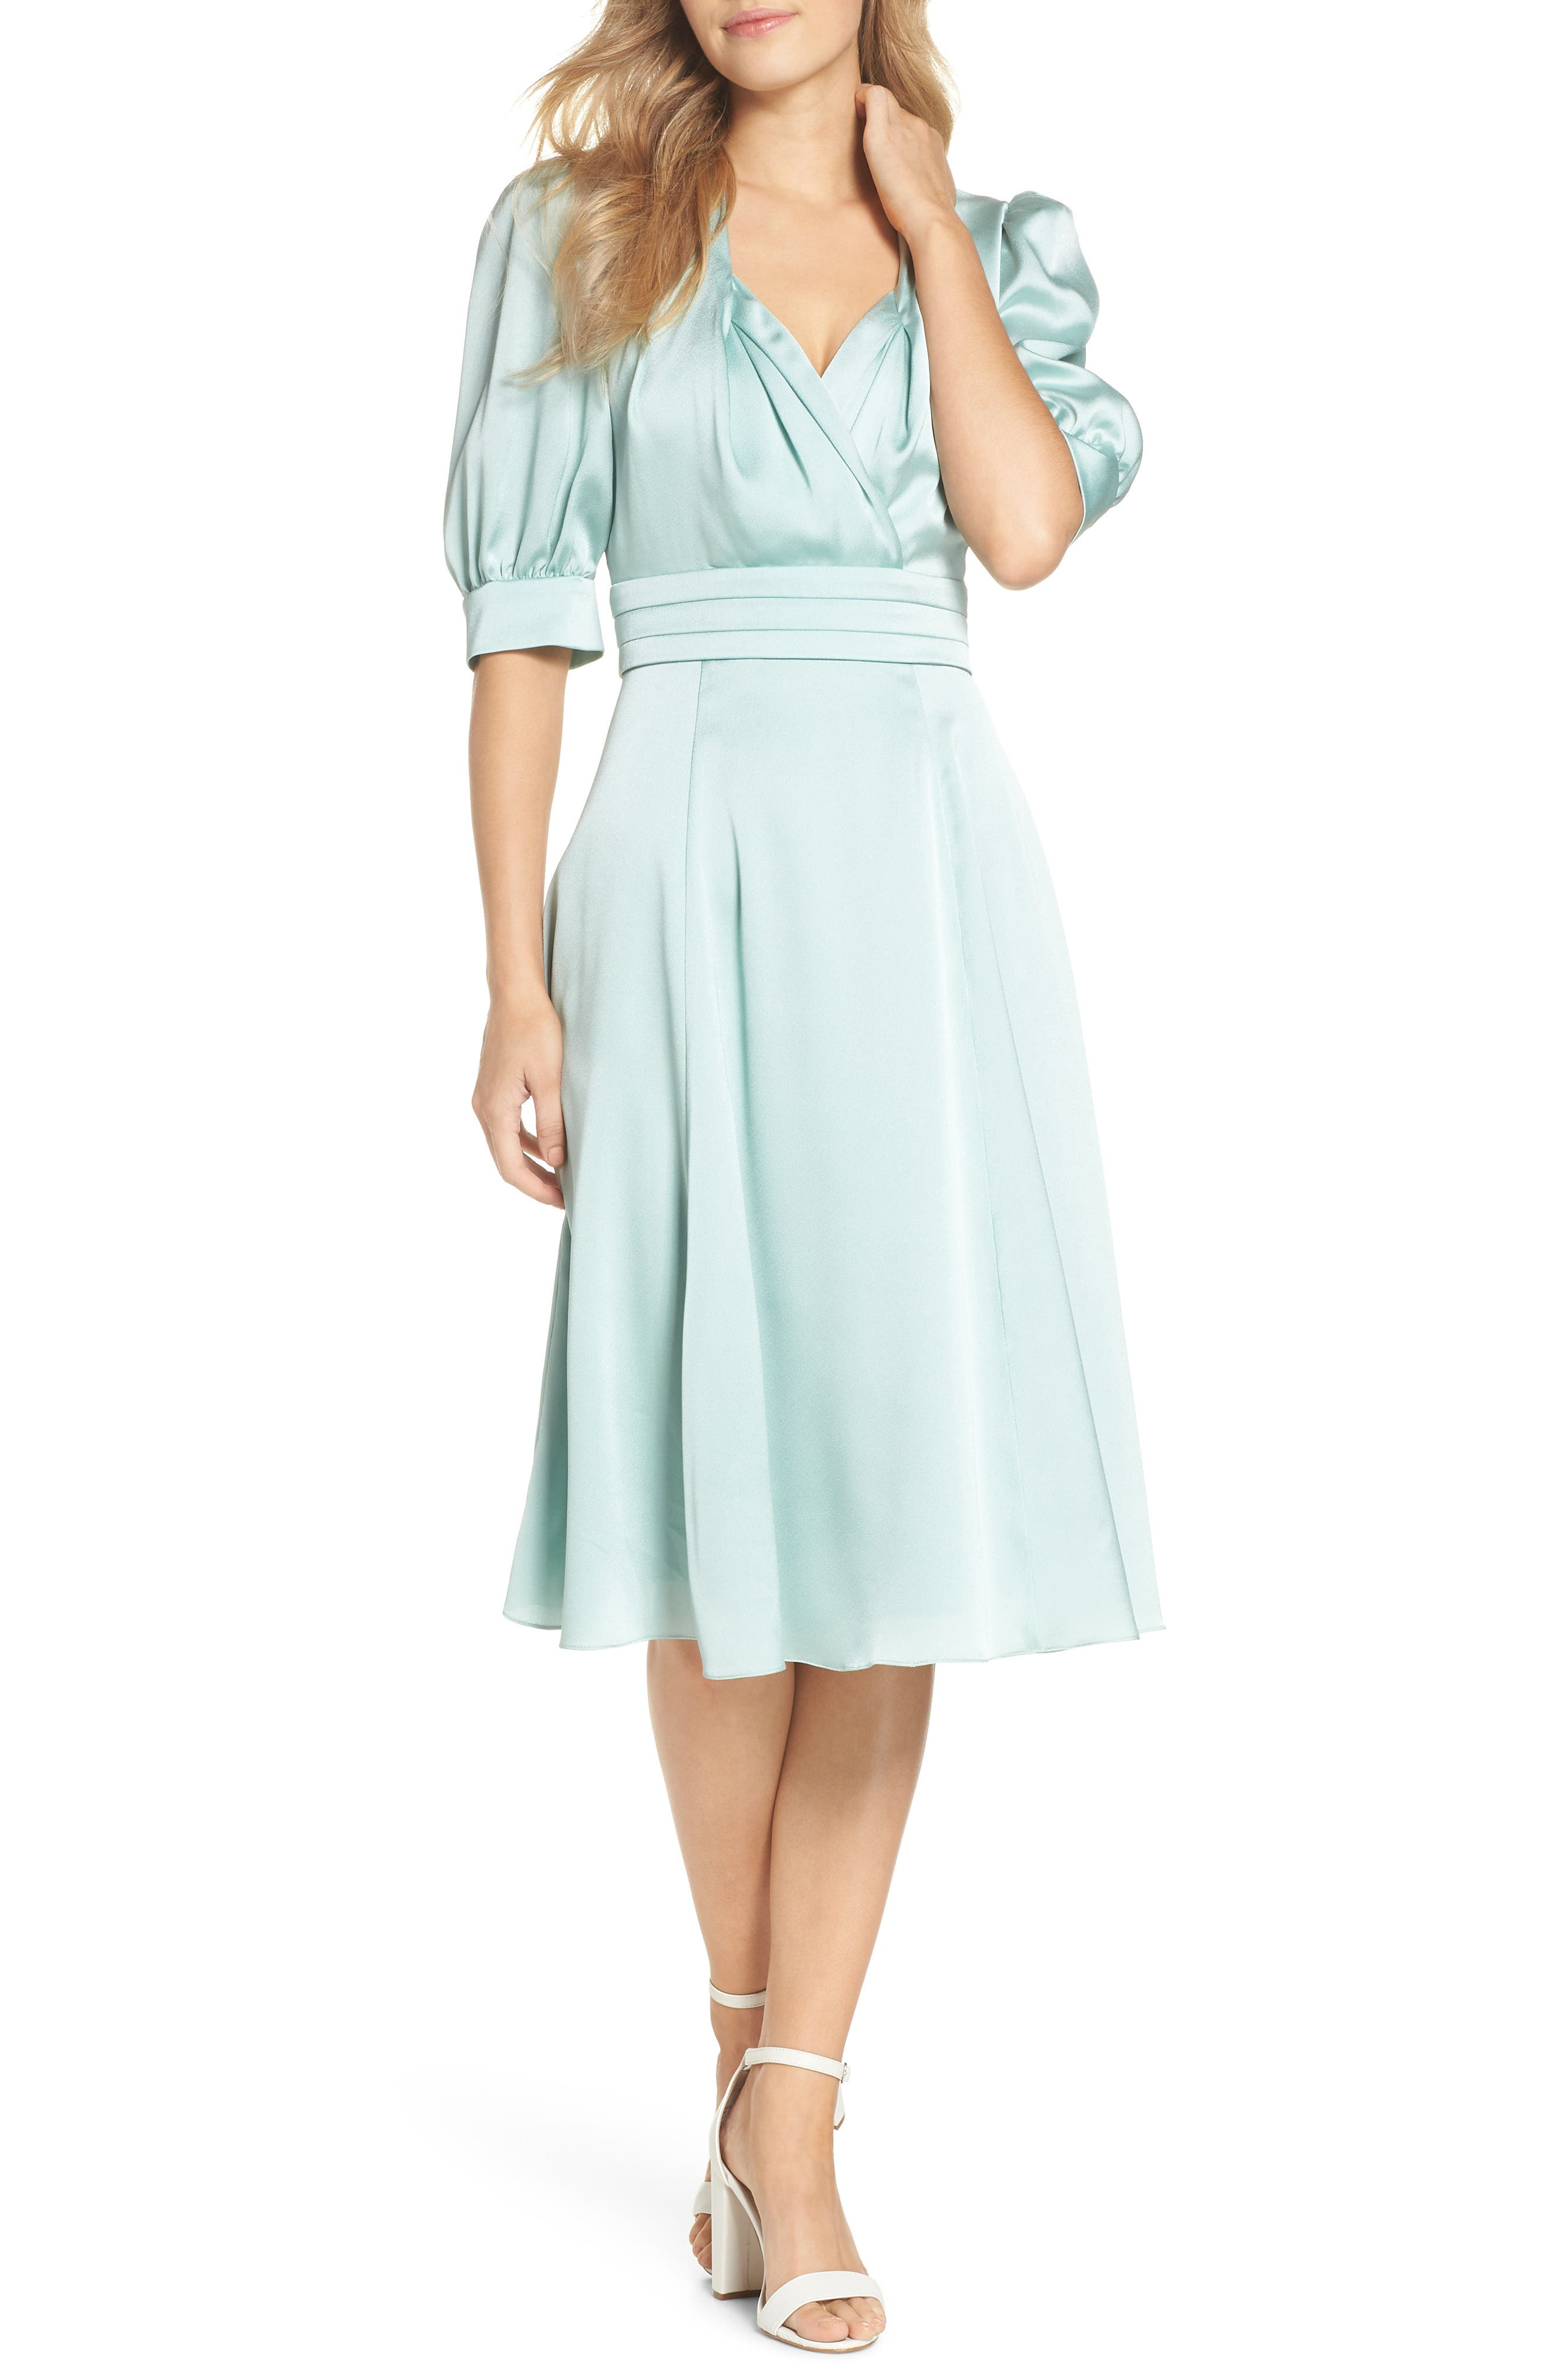 1940s Cocktail Dresses, Party Dresses Womens Gal Meets Glam Collection Vera Satin Fit  Flare Dress $178.00 AT vintagedancer.com